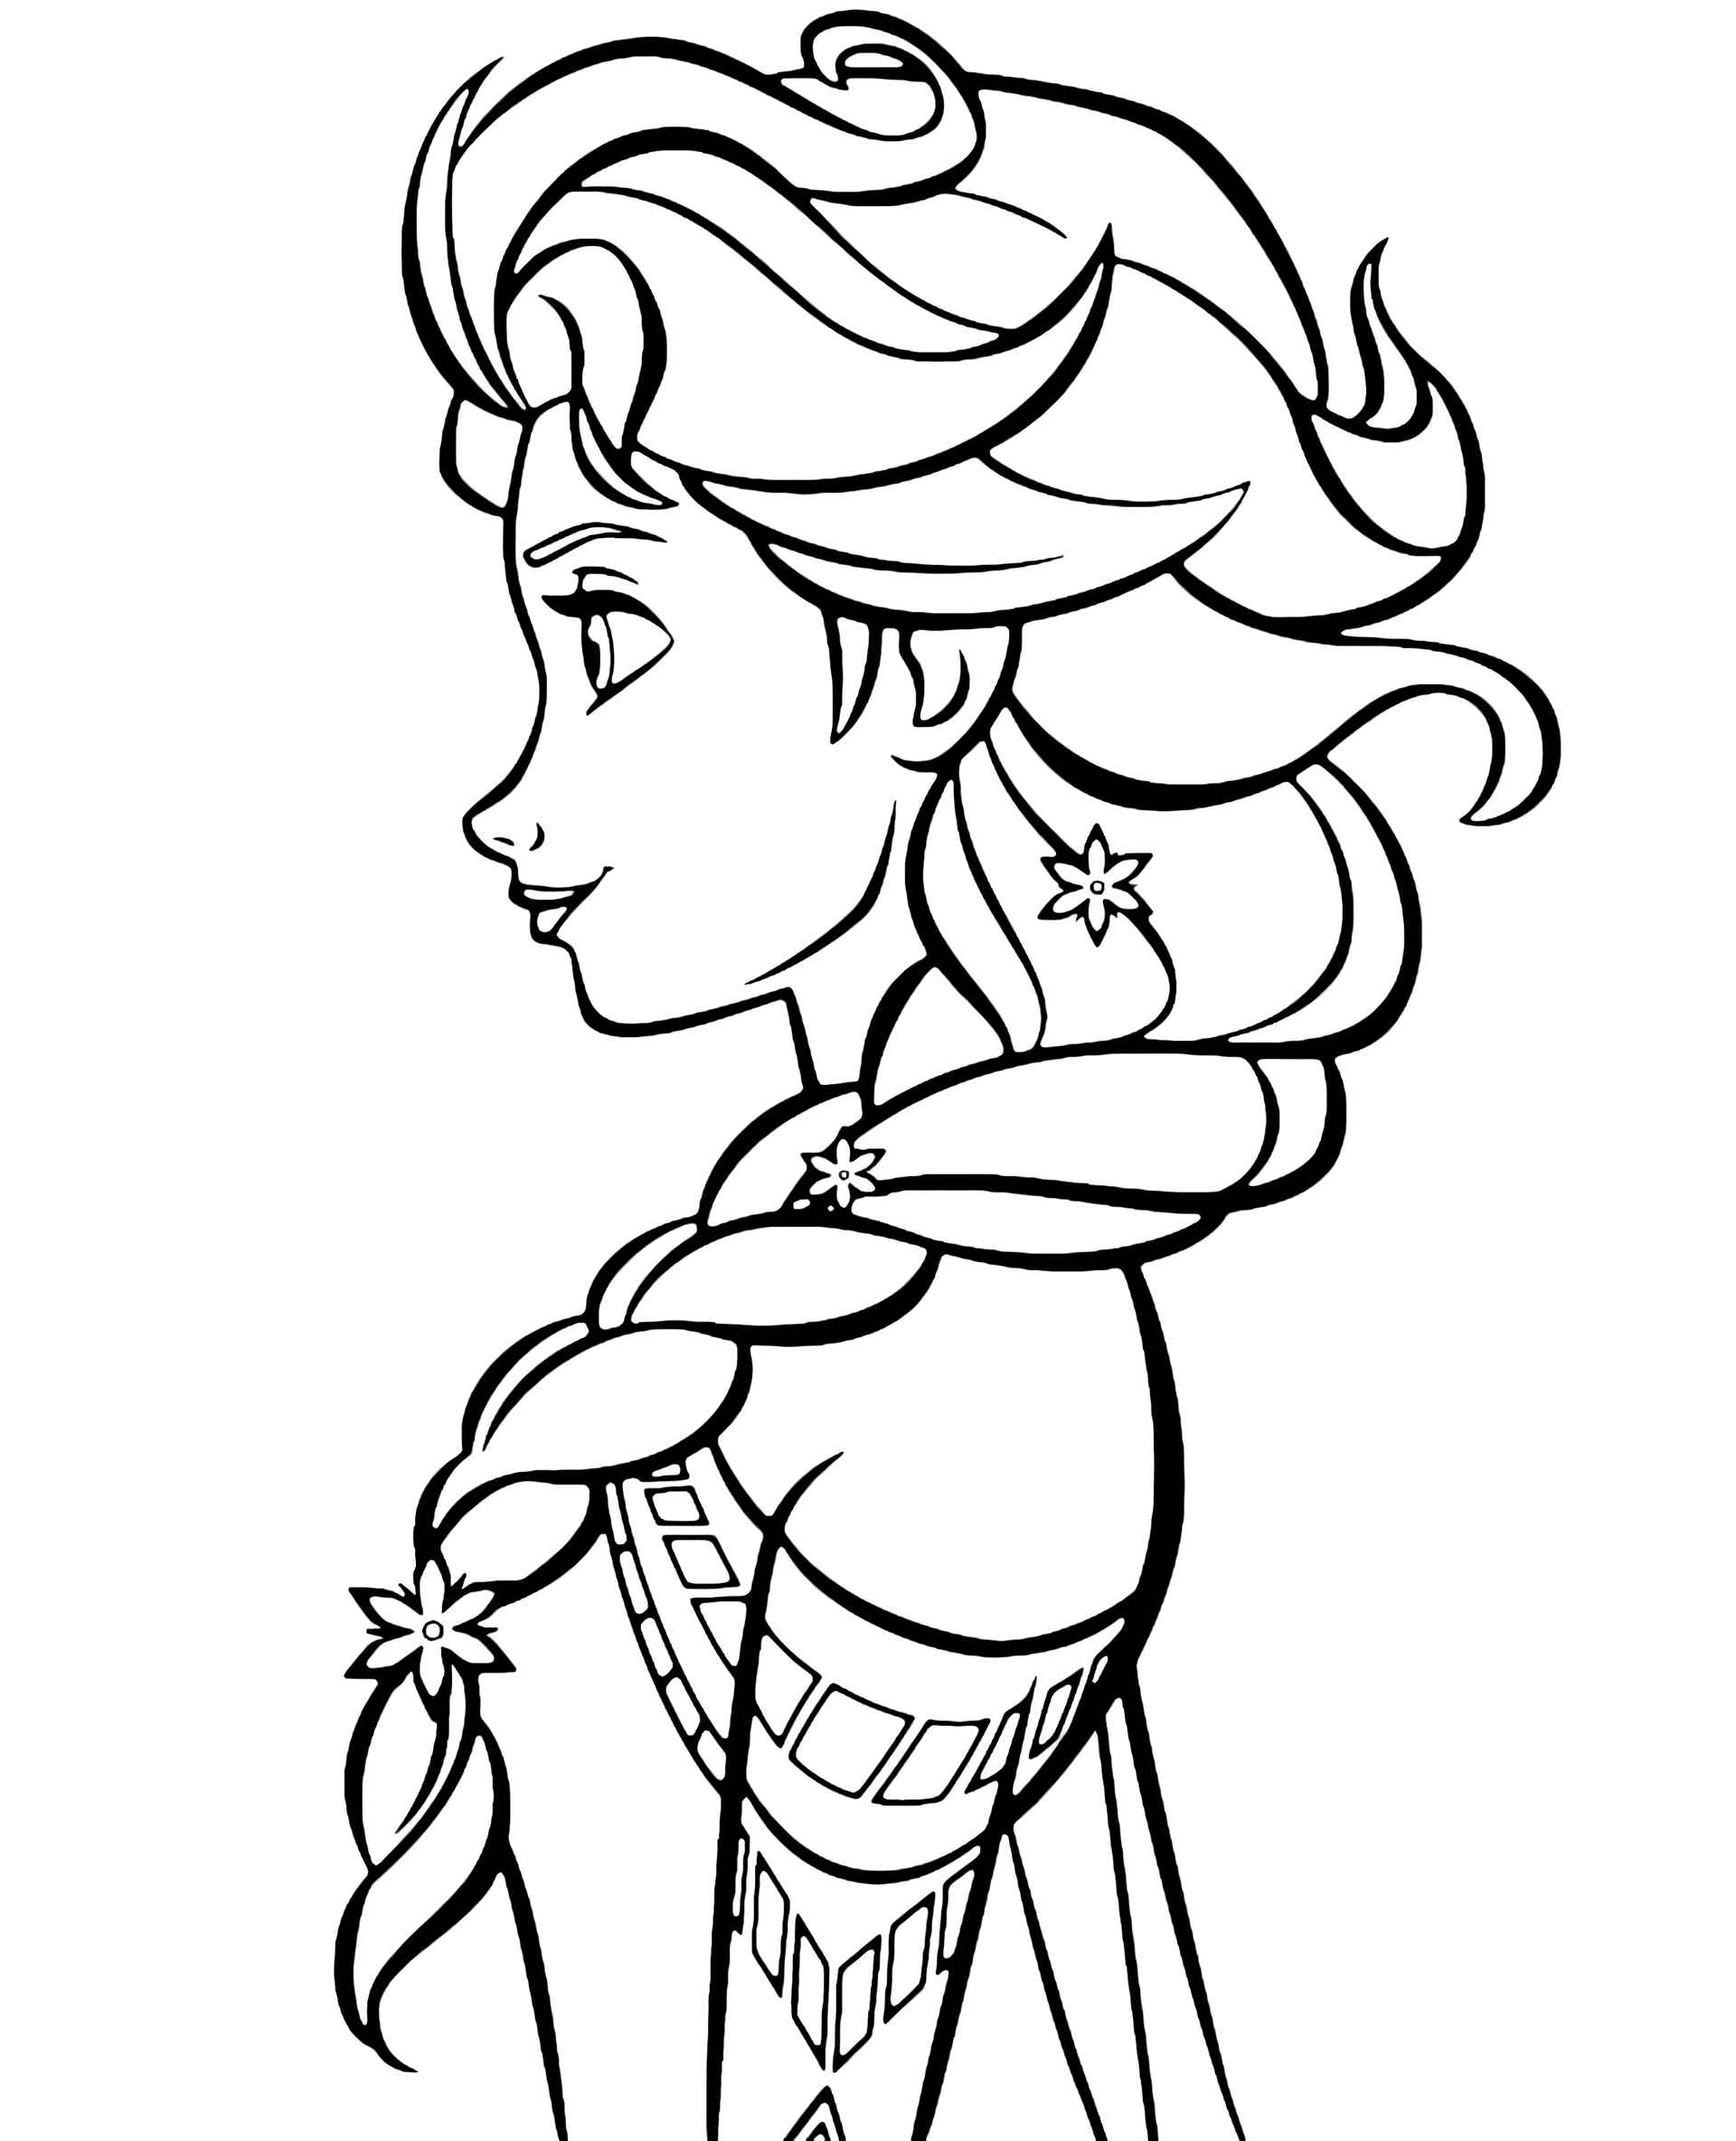 Elsa From Frozen Profile Coloring Page